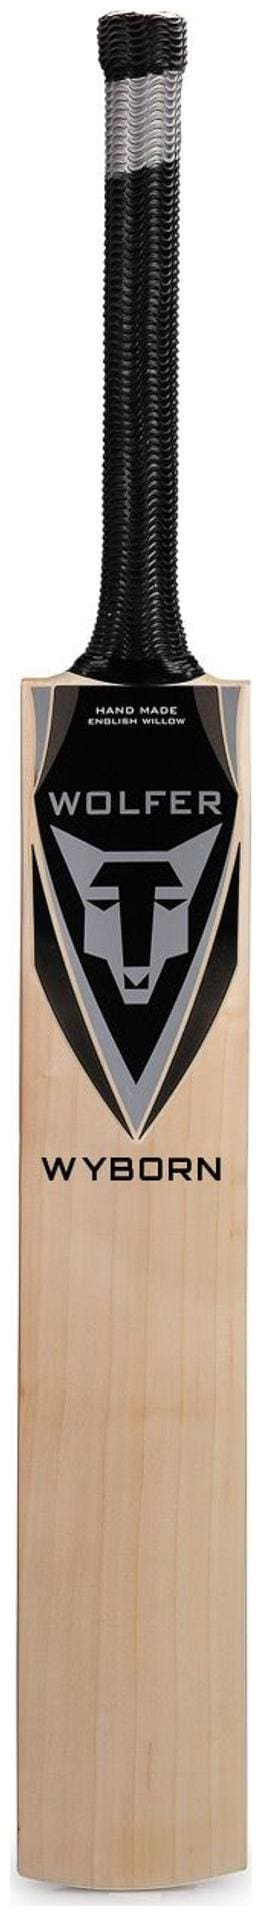 Wolfer Wyborn (Thick Edged - Extra Stroke) English Willow Bat